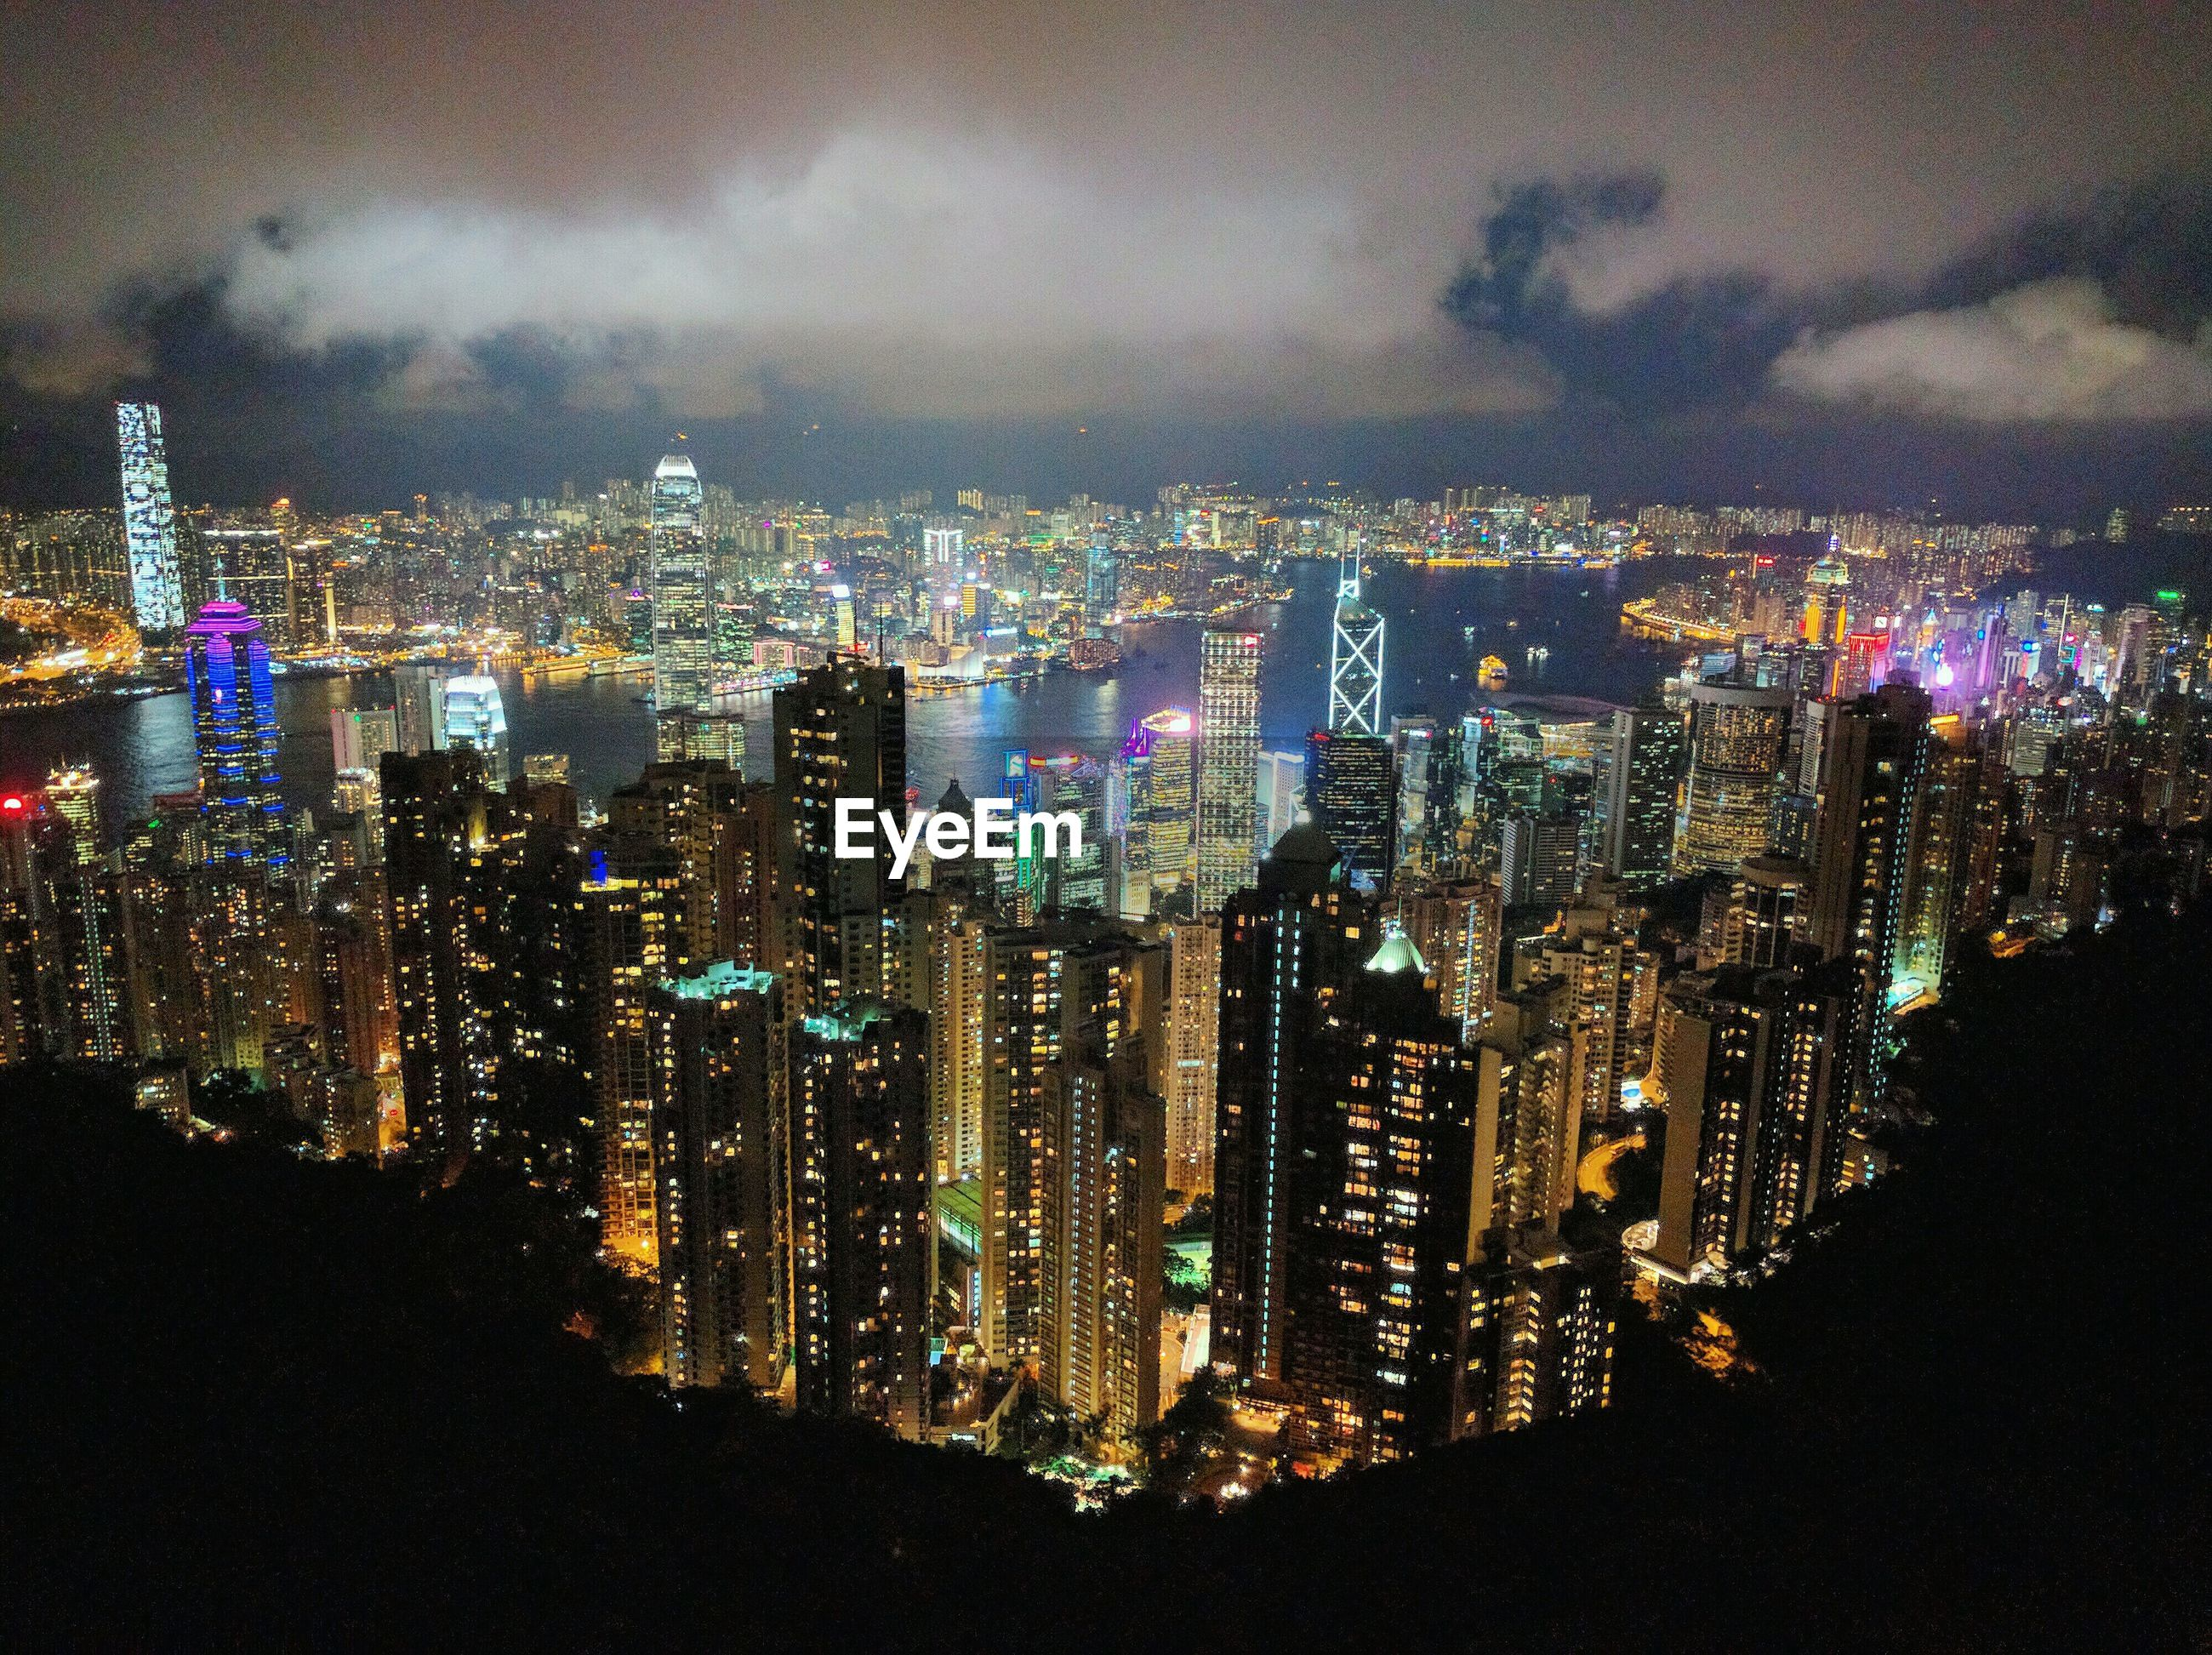 Aerial view of illuminated buildings against cloudy sky in city seen through victoria peak